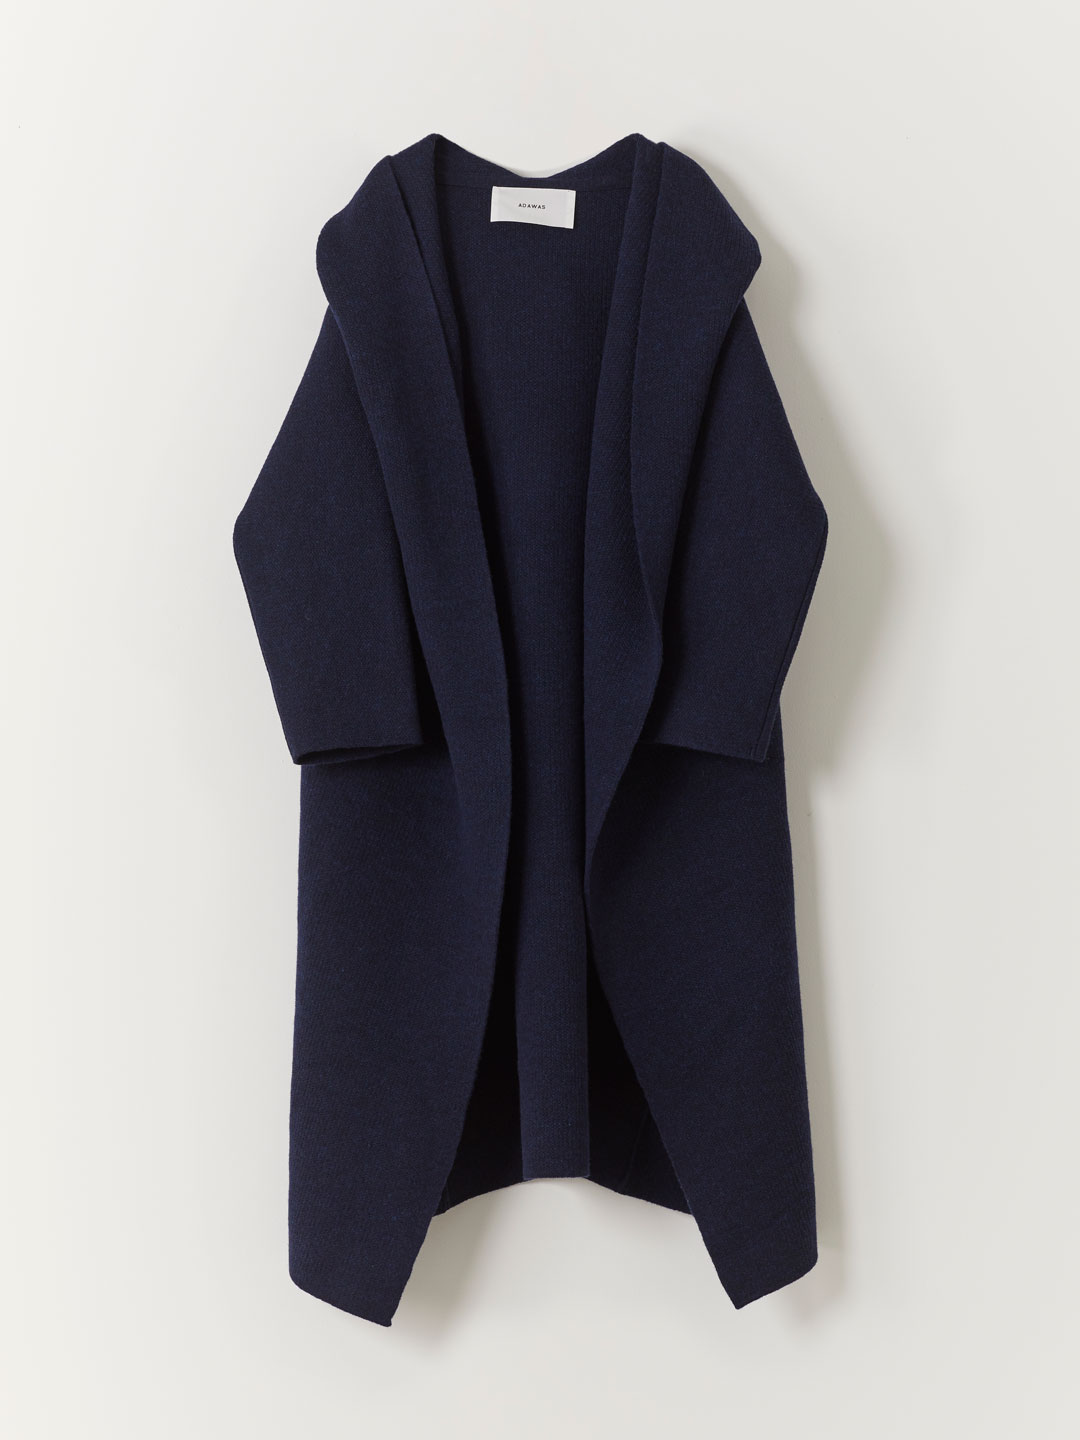 Airy Spongish Hooded Cardigan  - Navy